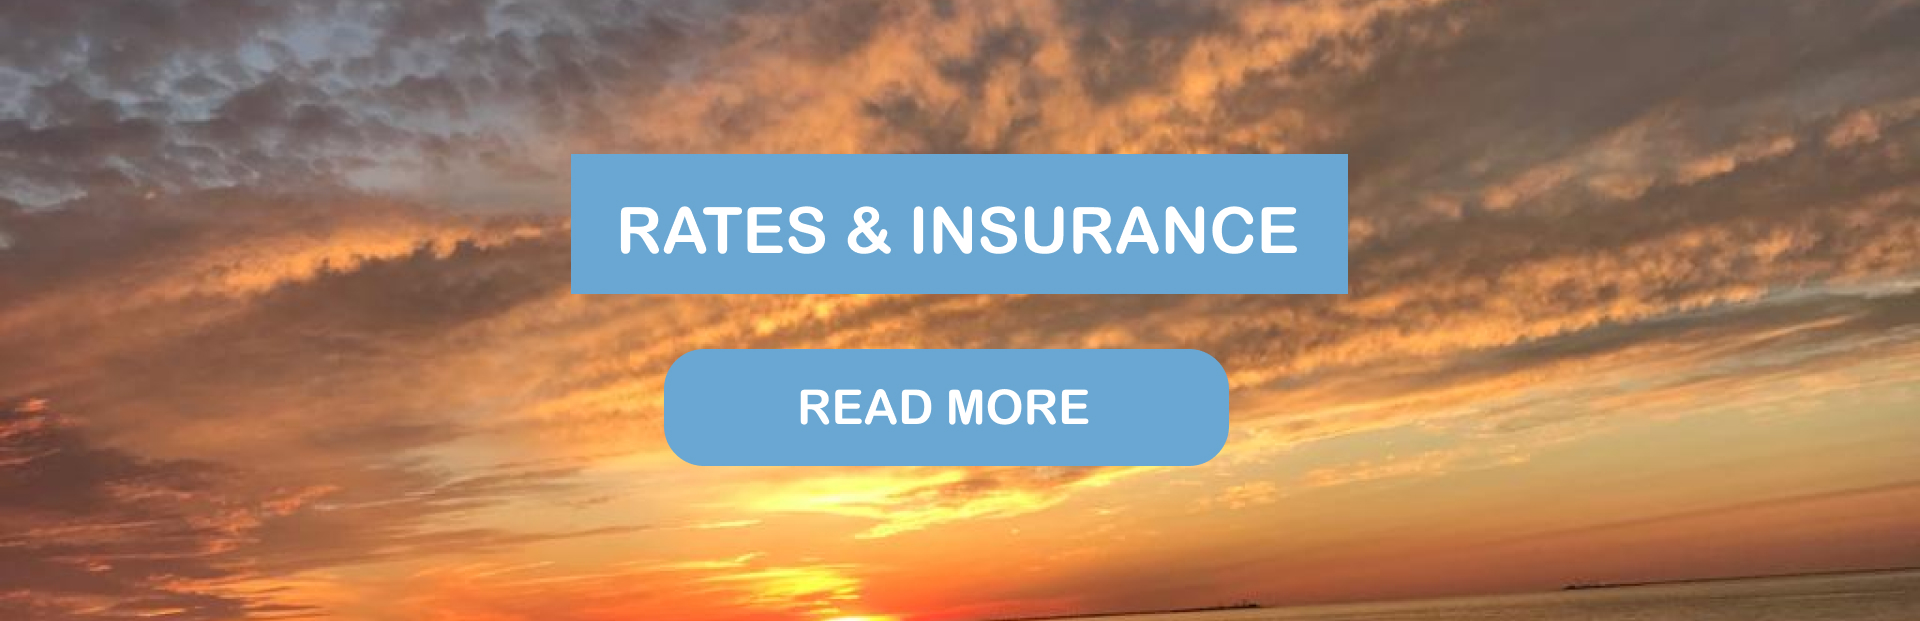 rates and insurance header image